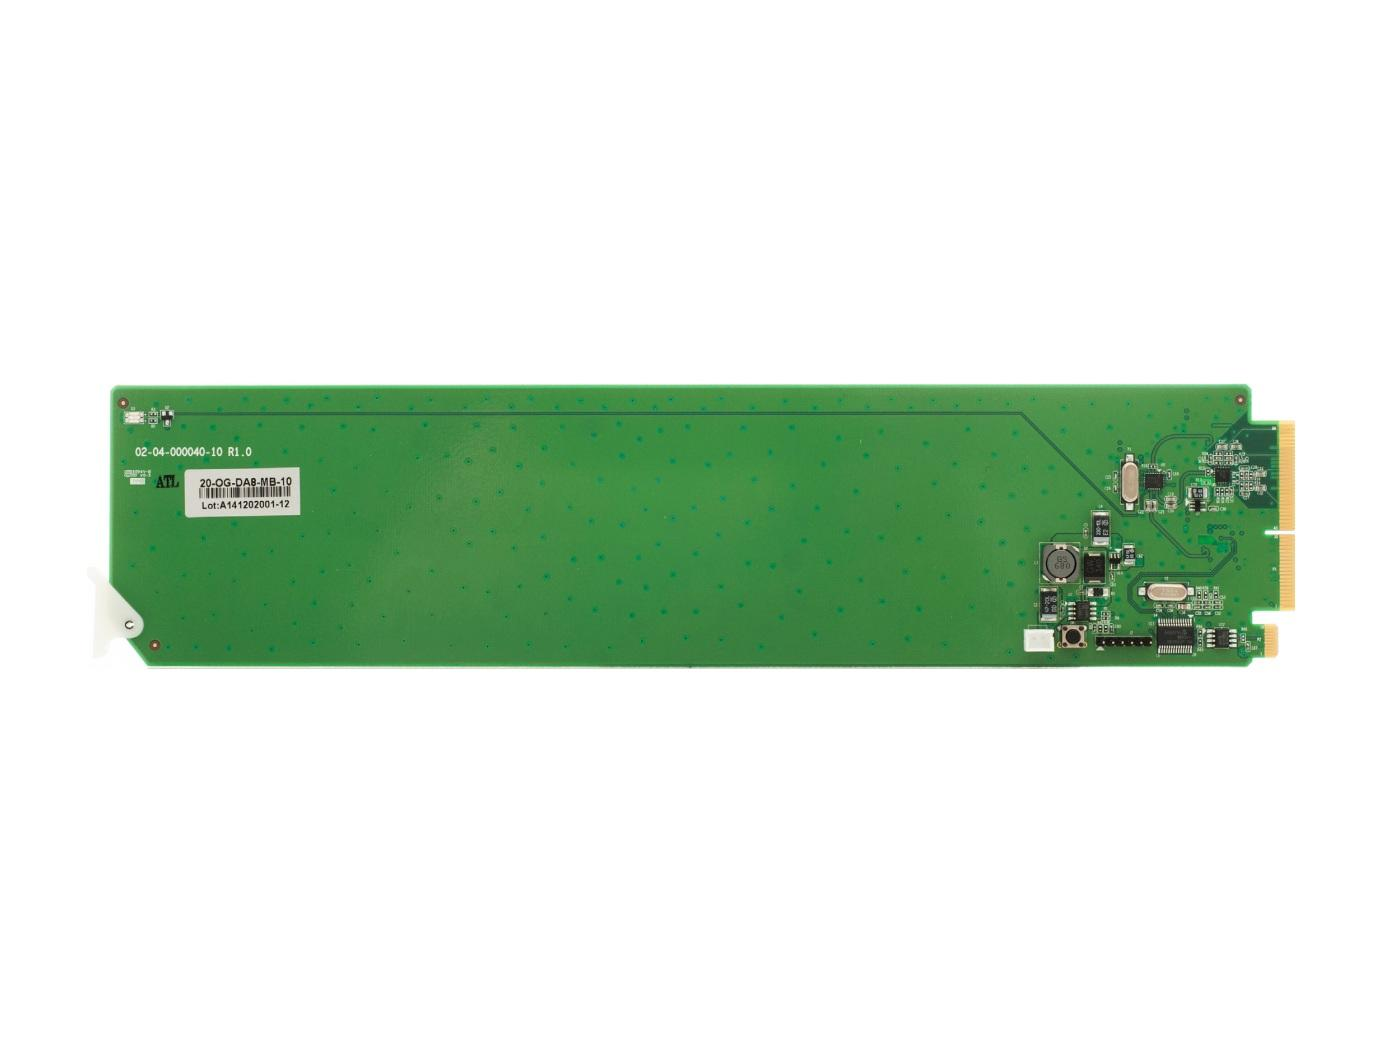 Apantac OG-DA-4HD-II-SET-1 1x4 SDI Distribution Amplifier w openGear Rear Module